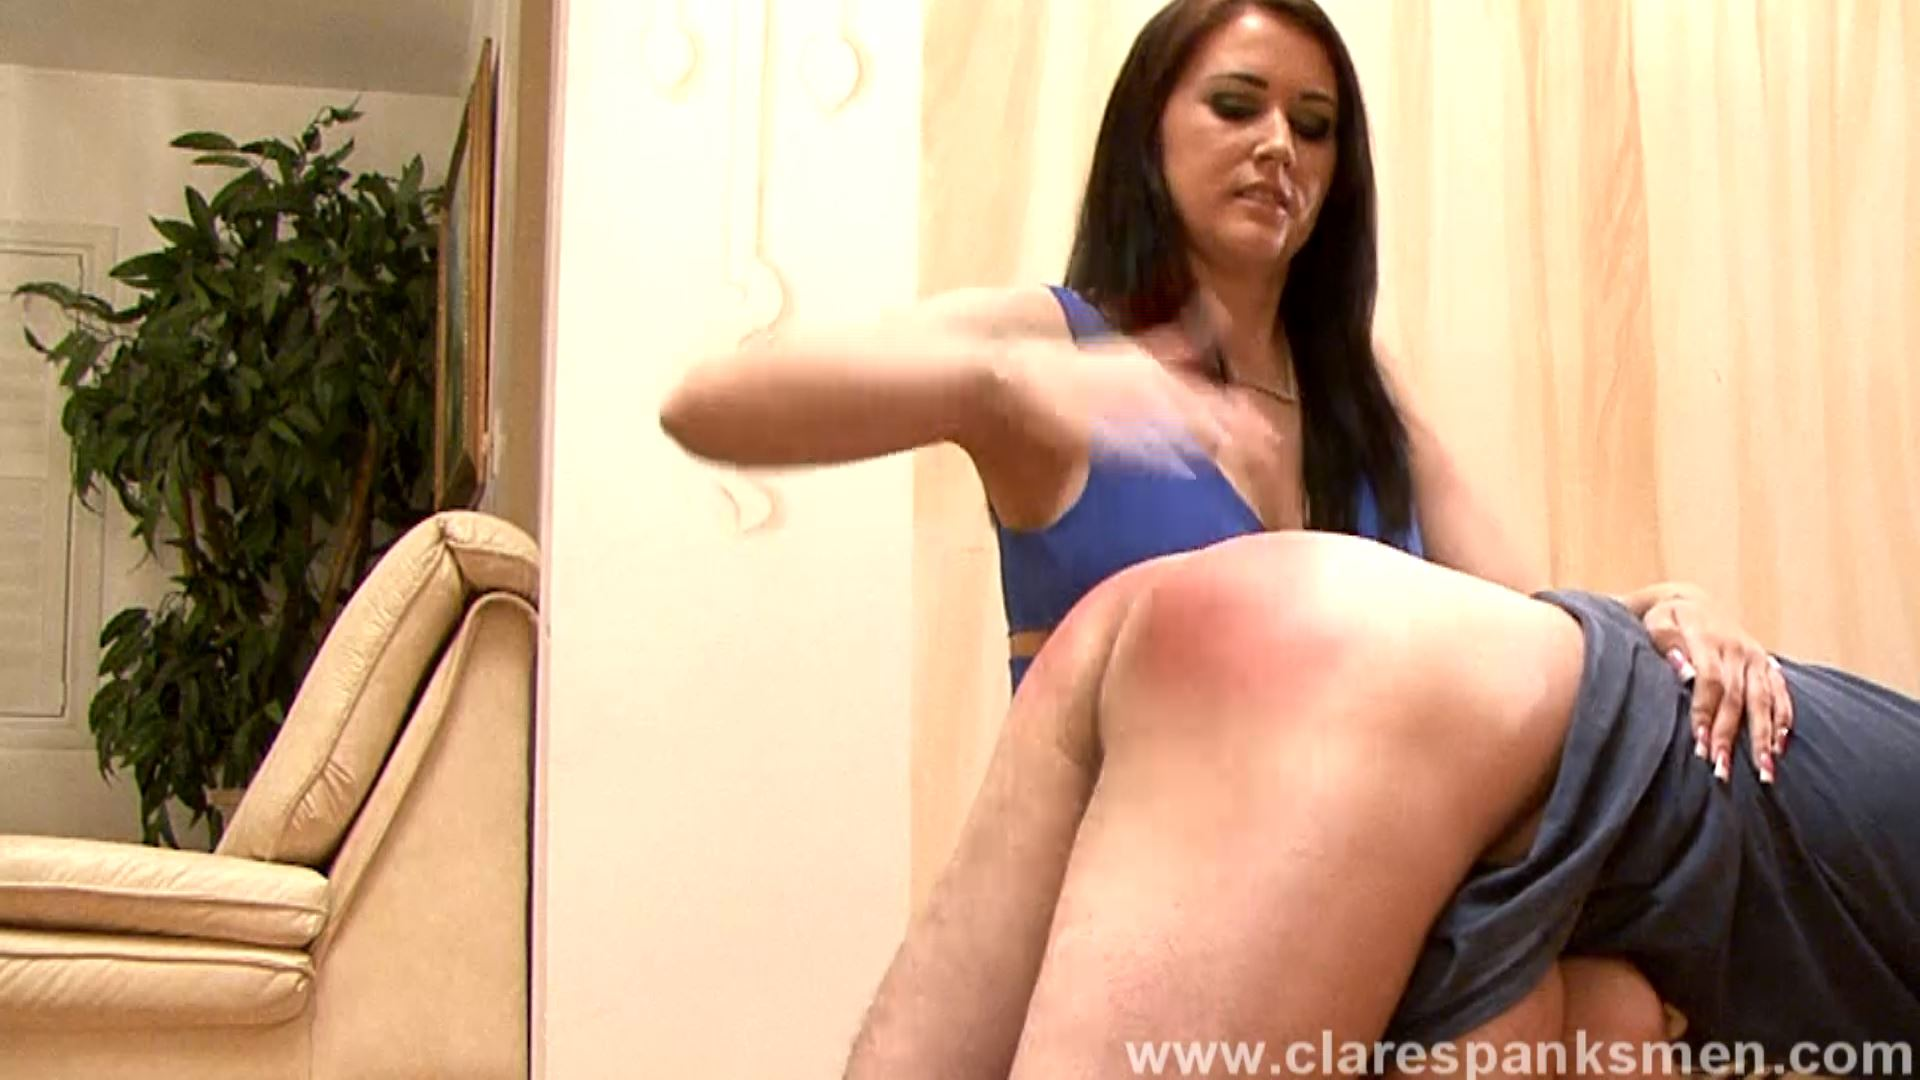 Alexis Grace In Scene: Alexis Grace Spanks BF For Being Late - CLARESPANKSMEN - FULL HD/1080p/MP4